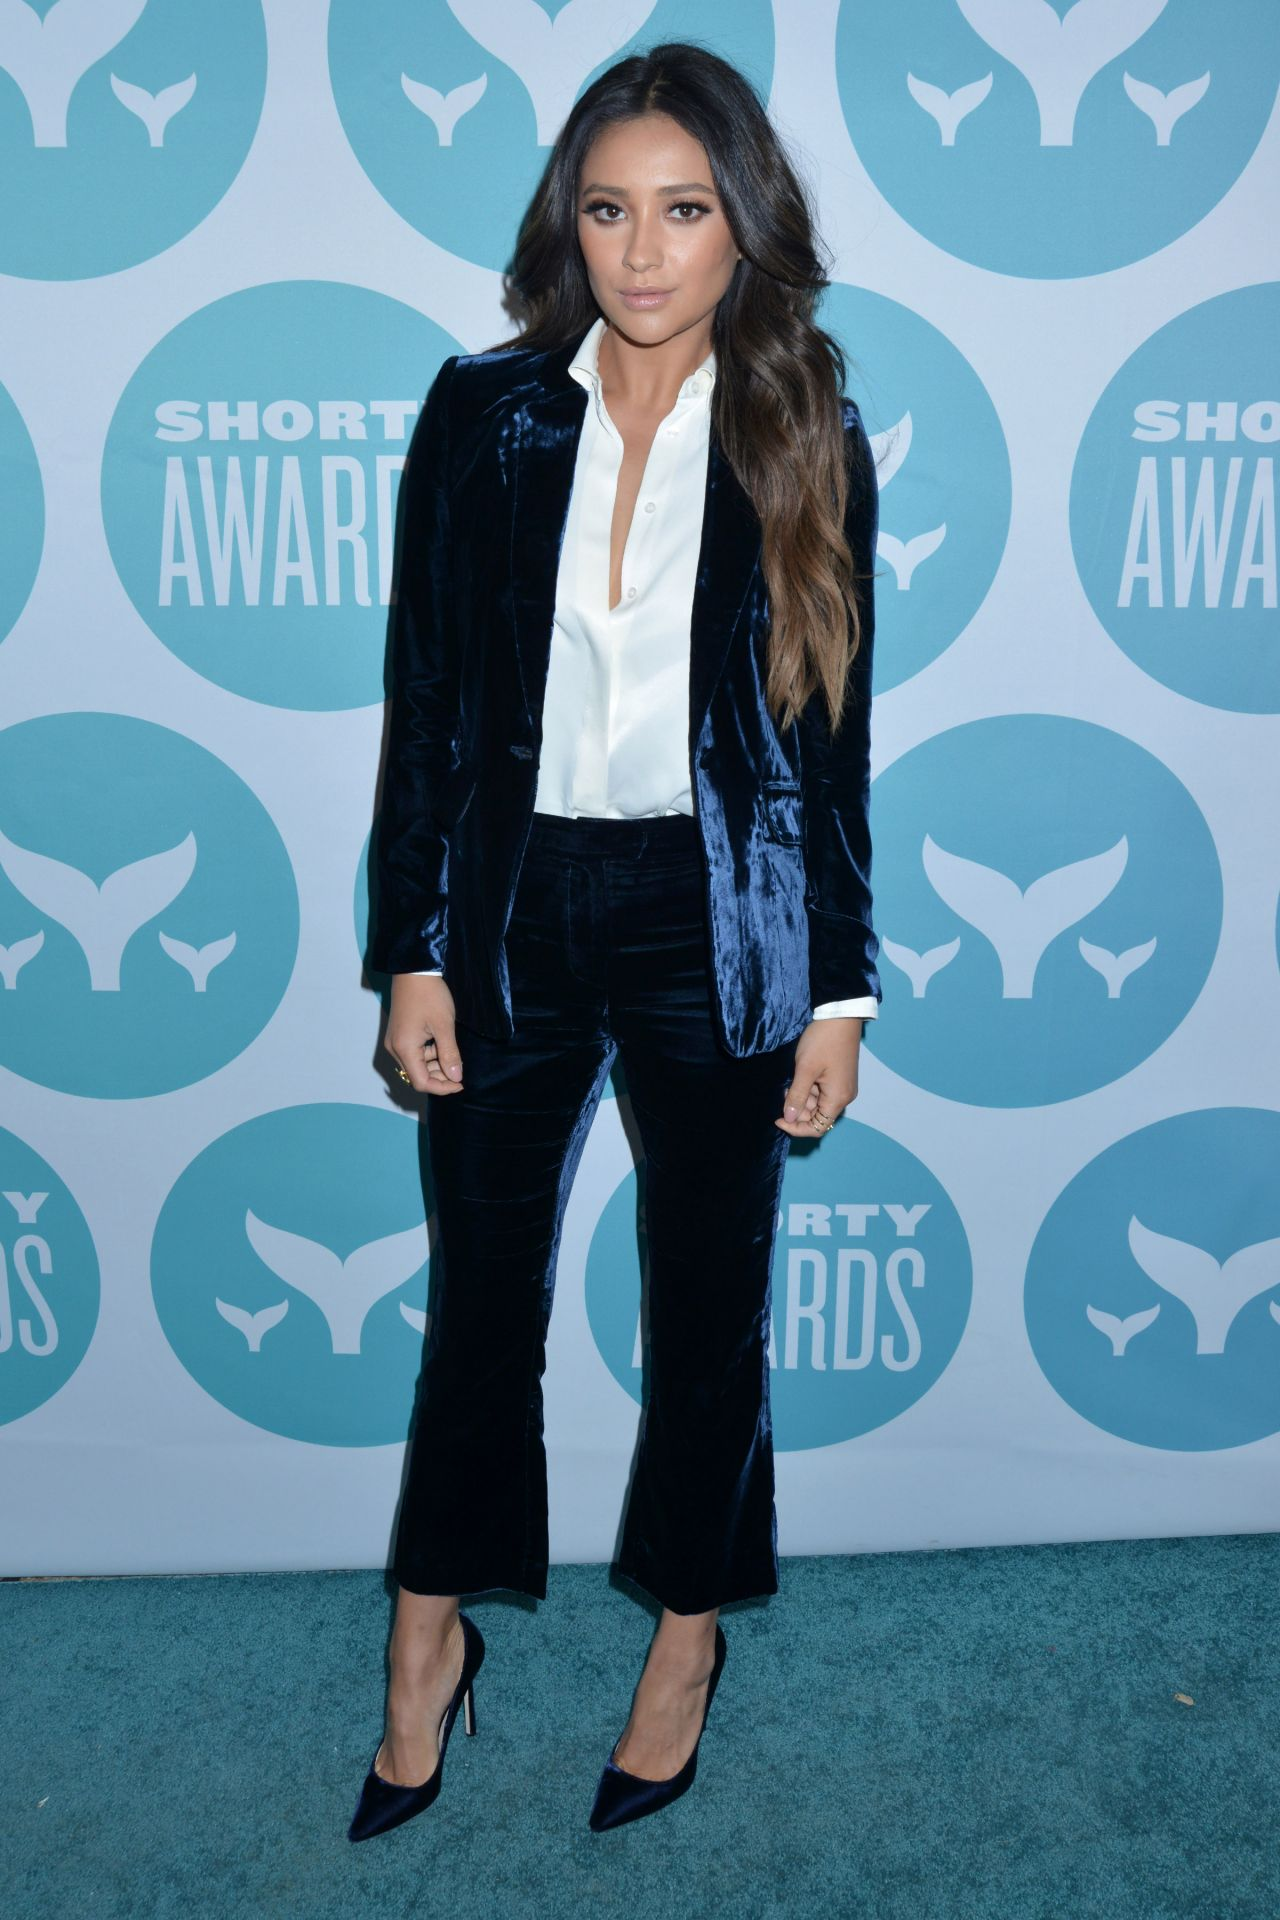 http://celebmafia.com/wp-content/uploads/2017/04/shay-mitchell-shorty-awards-2017-in-new-york-city-5.jpg